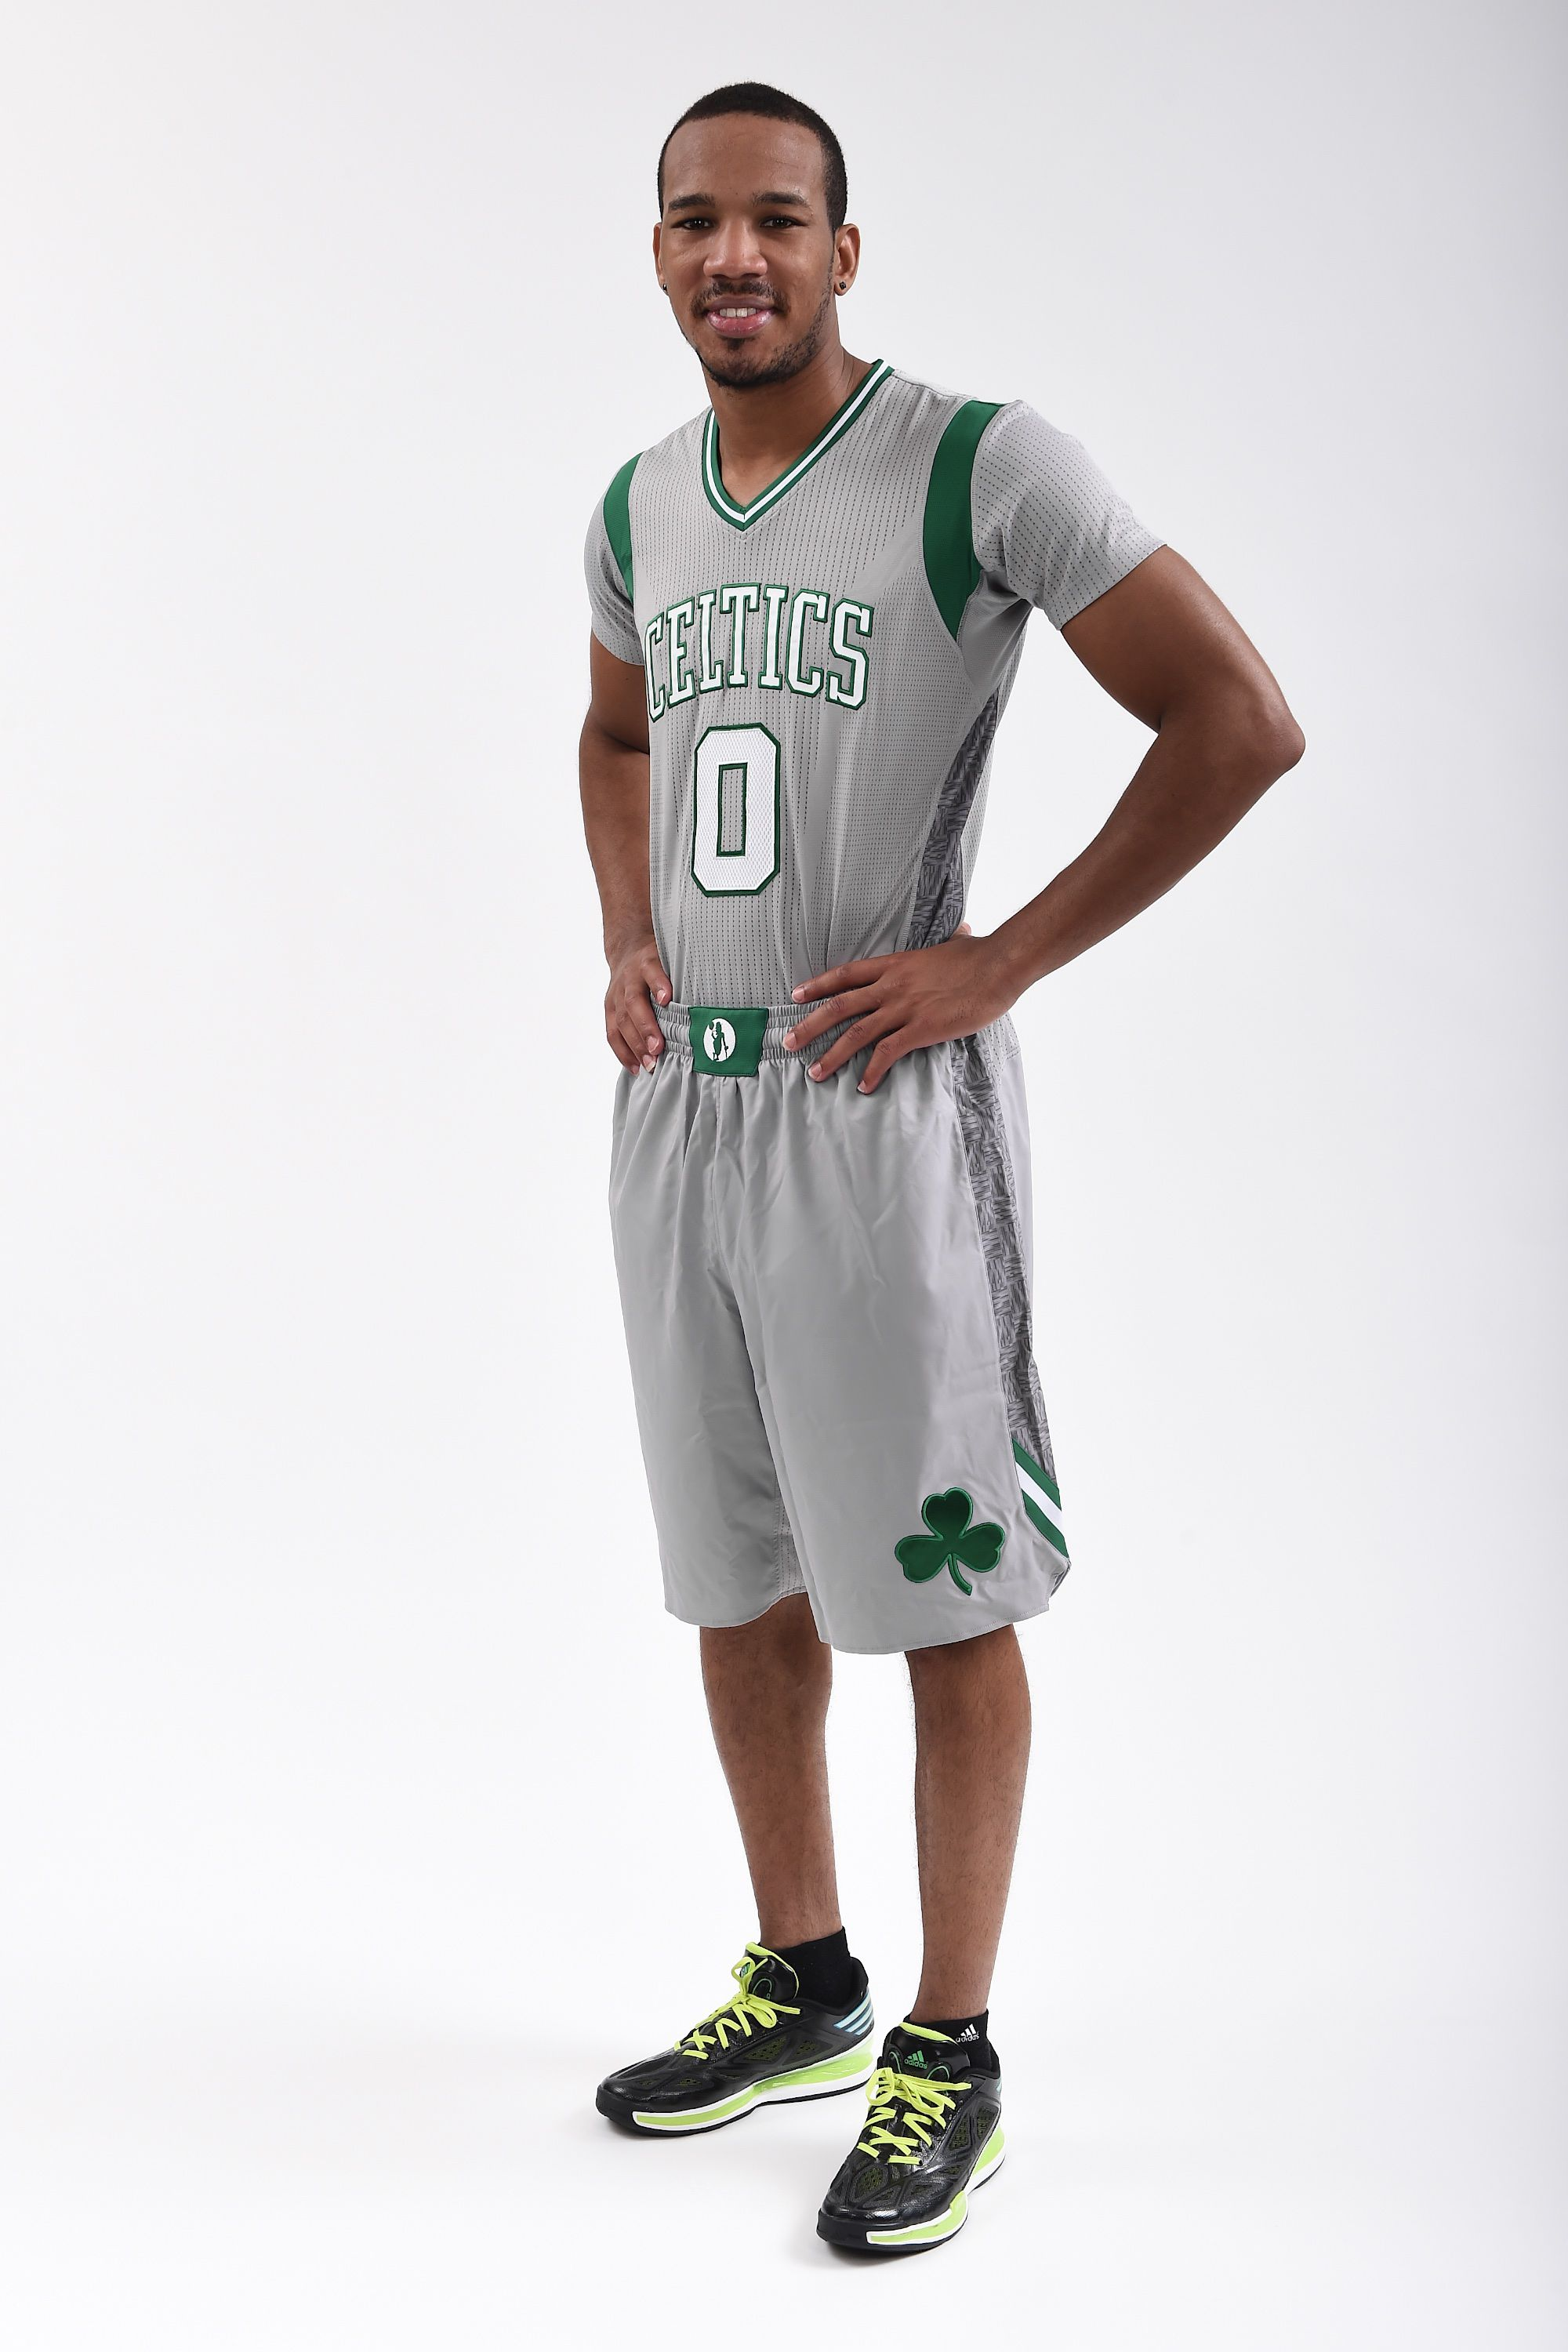 Celtics Uniform 93